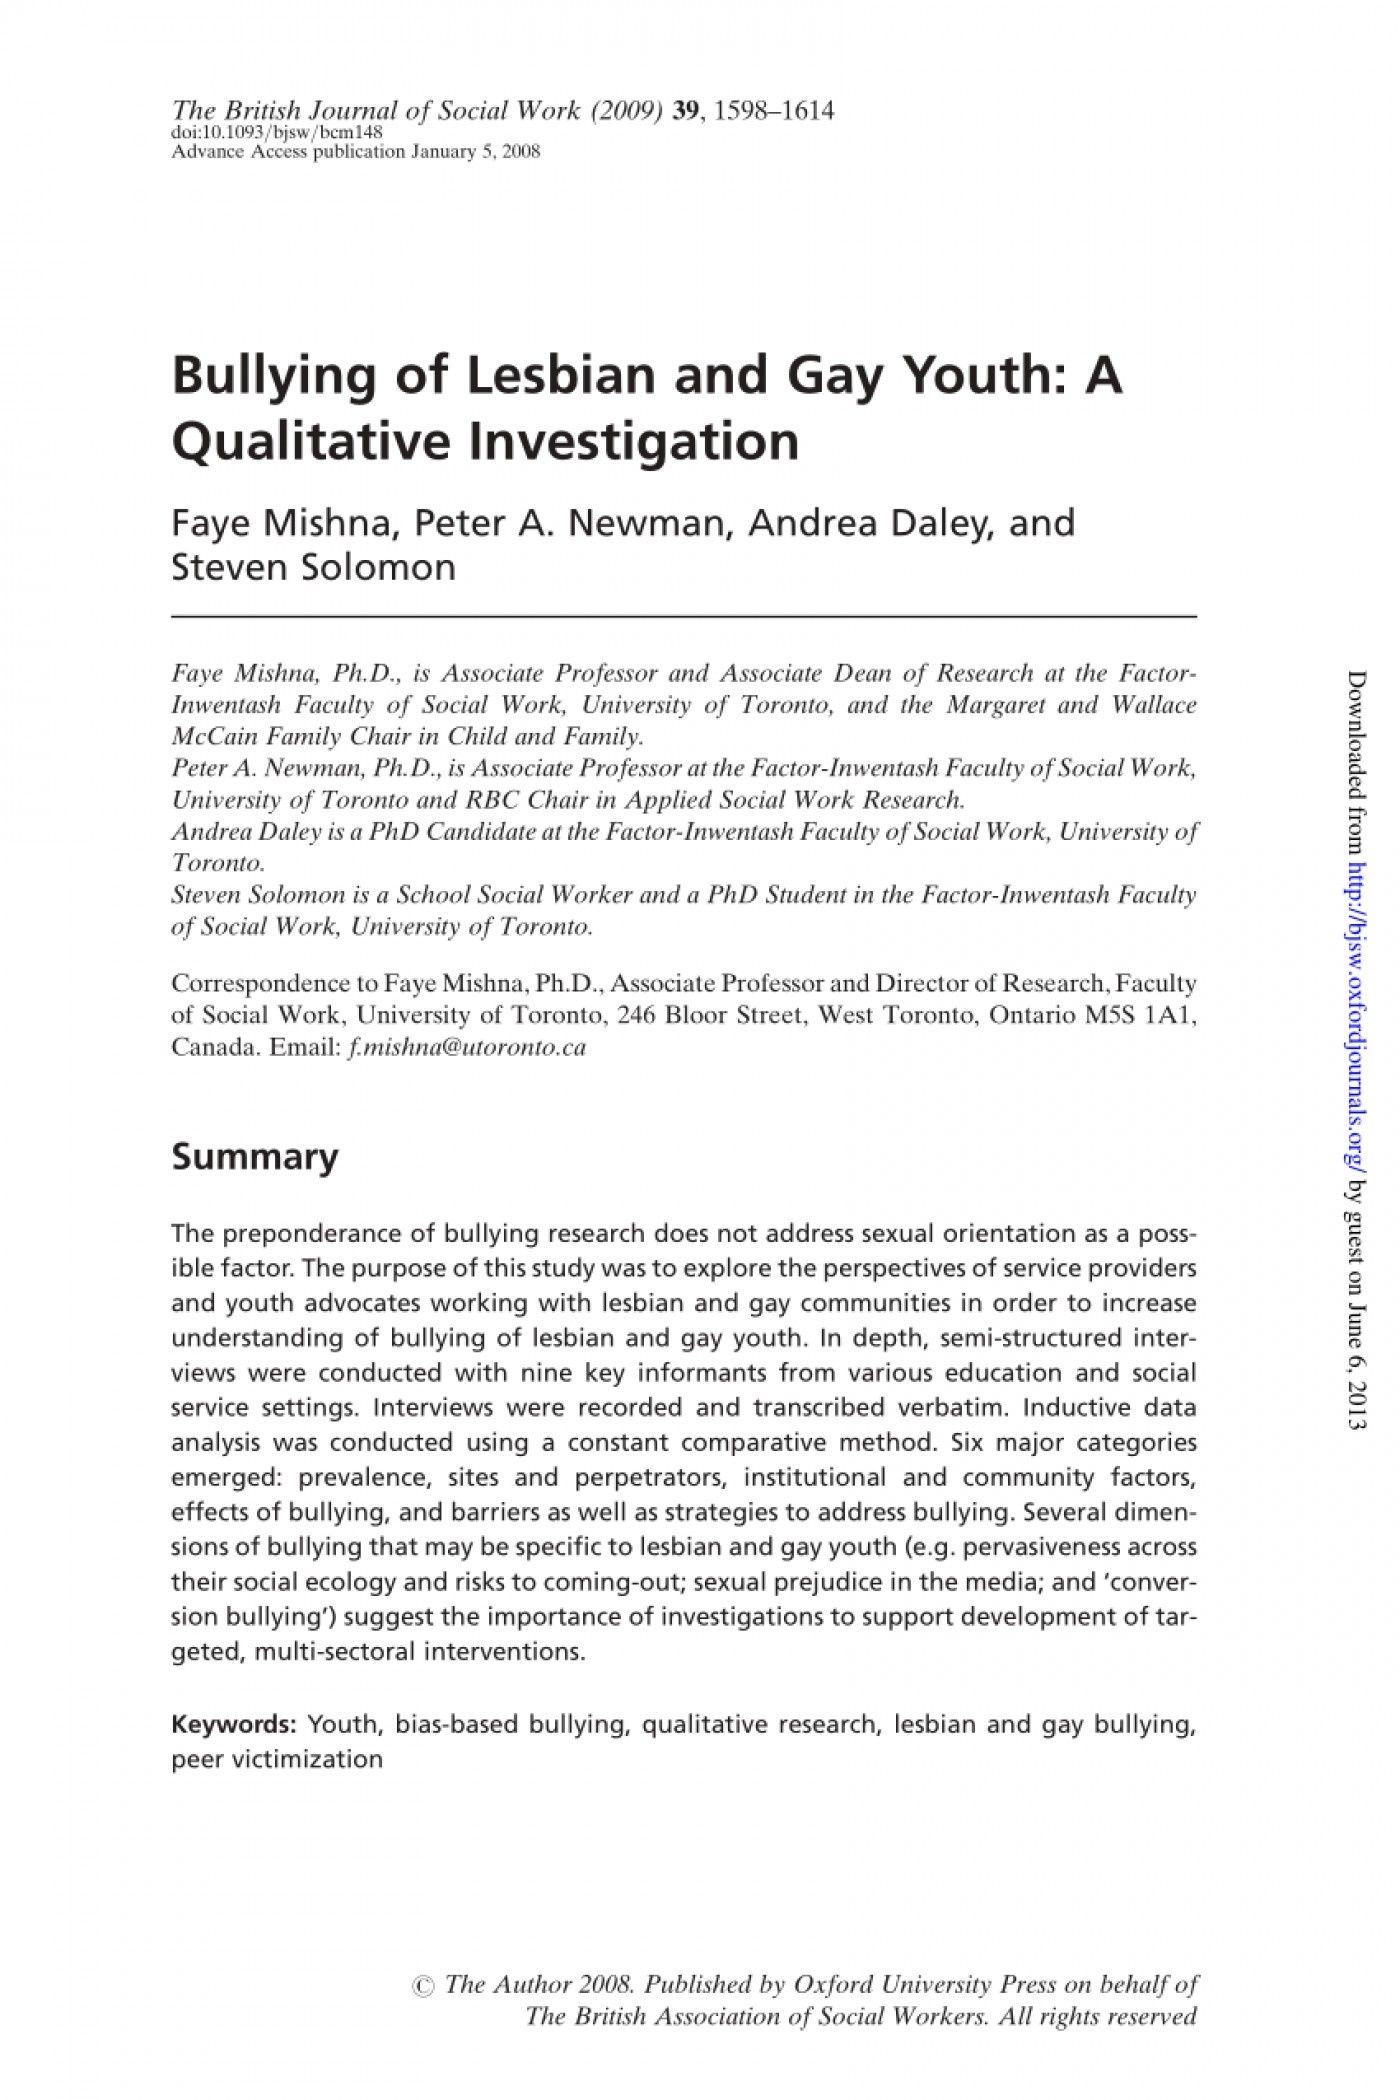 005 Bullying Research Paper Pdf Imposing Short About Quantitative Effects Of 1400